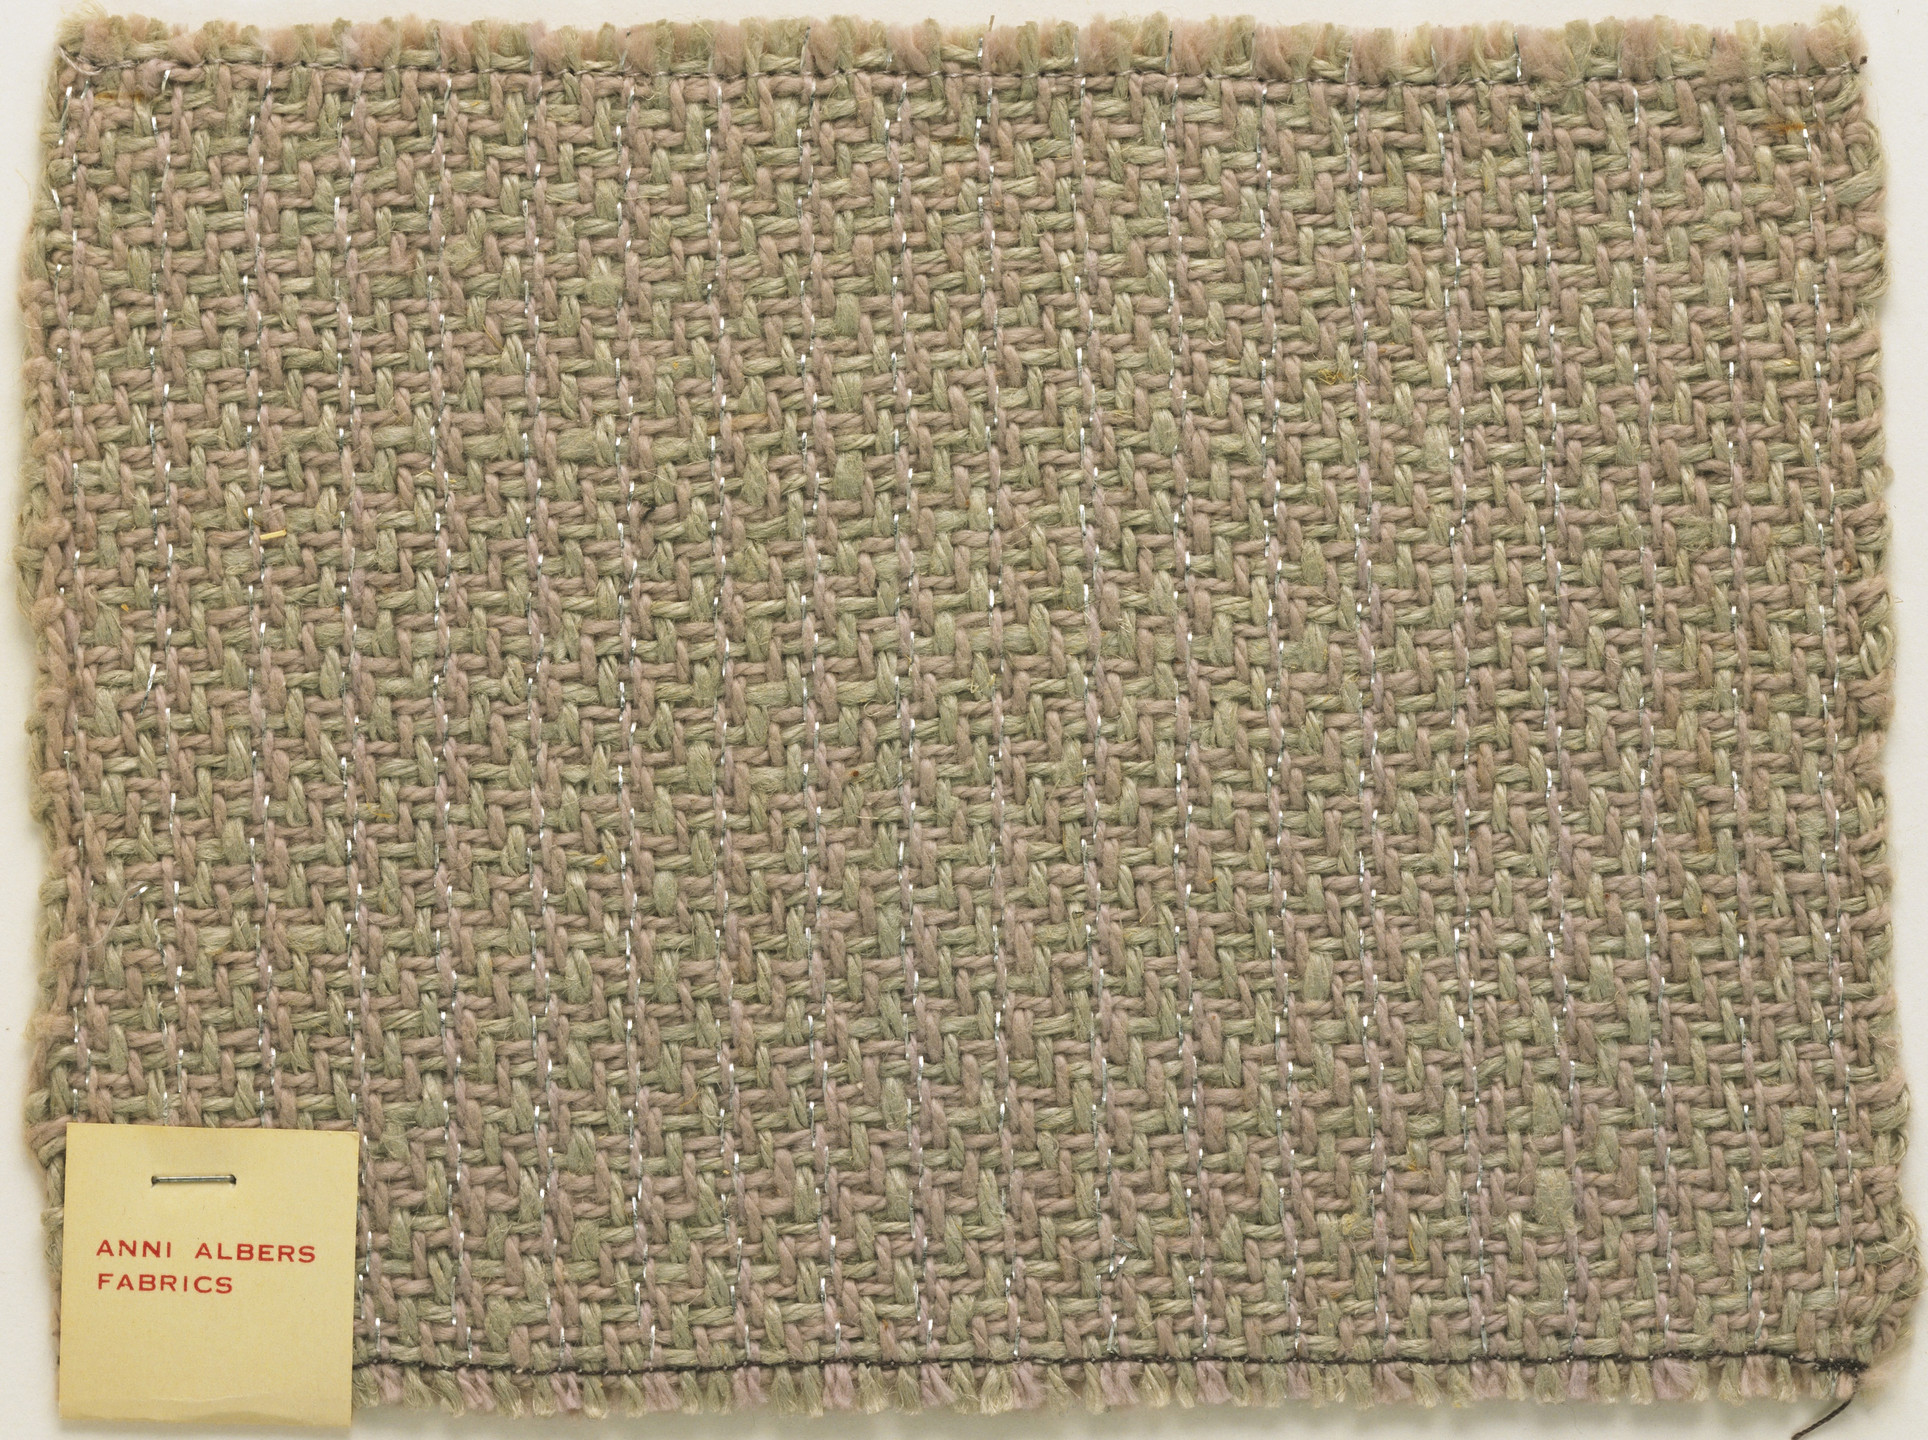 Anni Albers. Drapery Material. After 1933